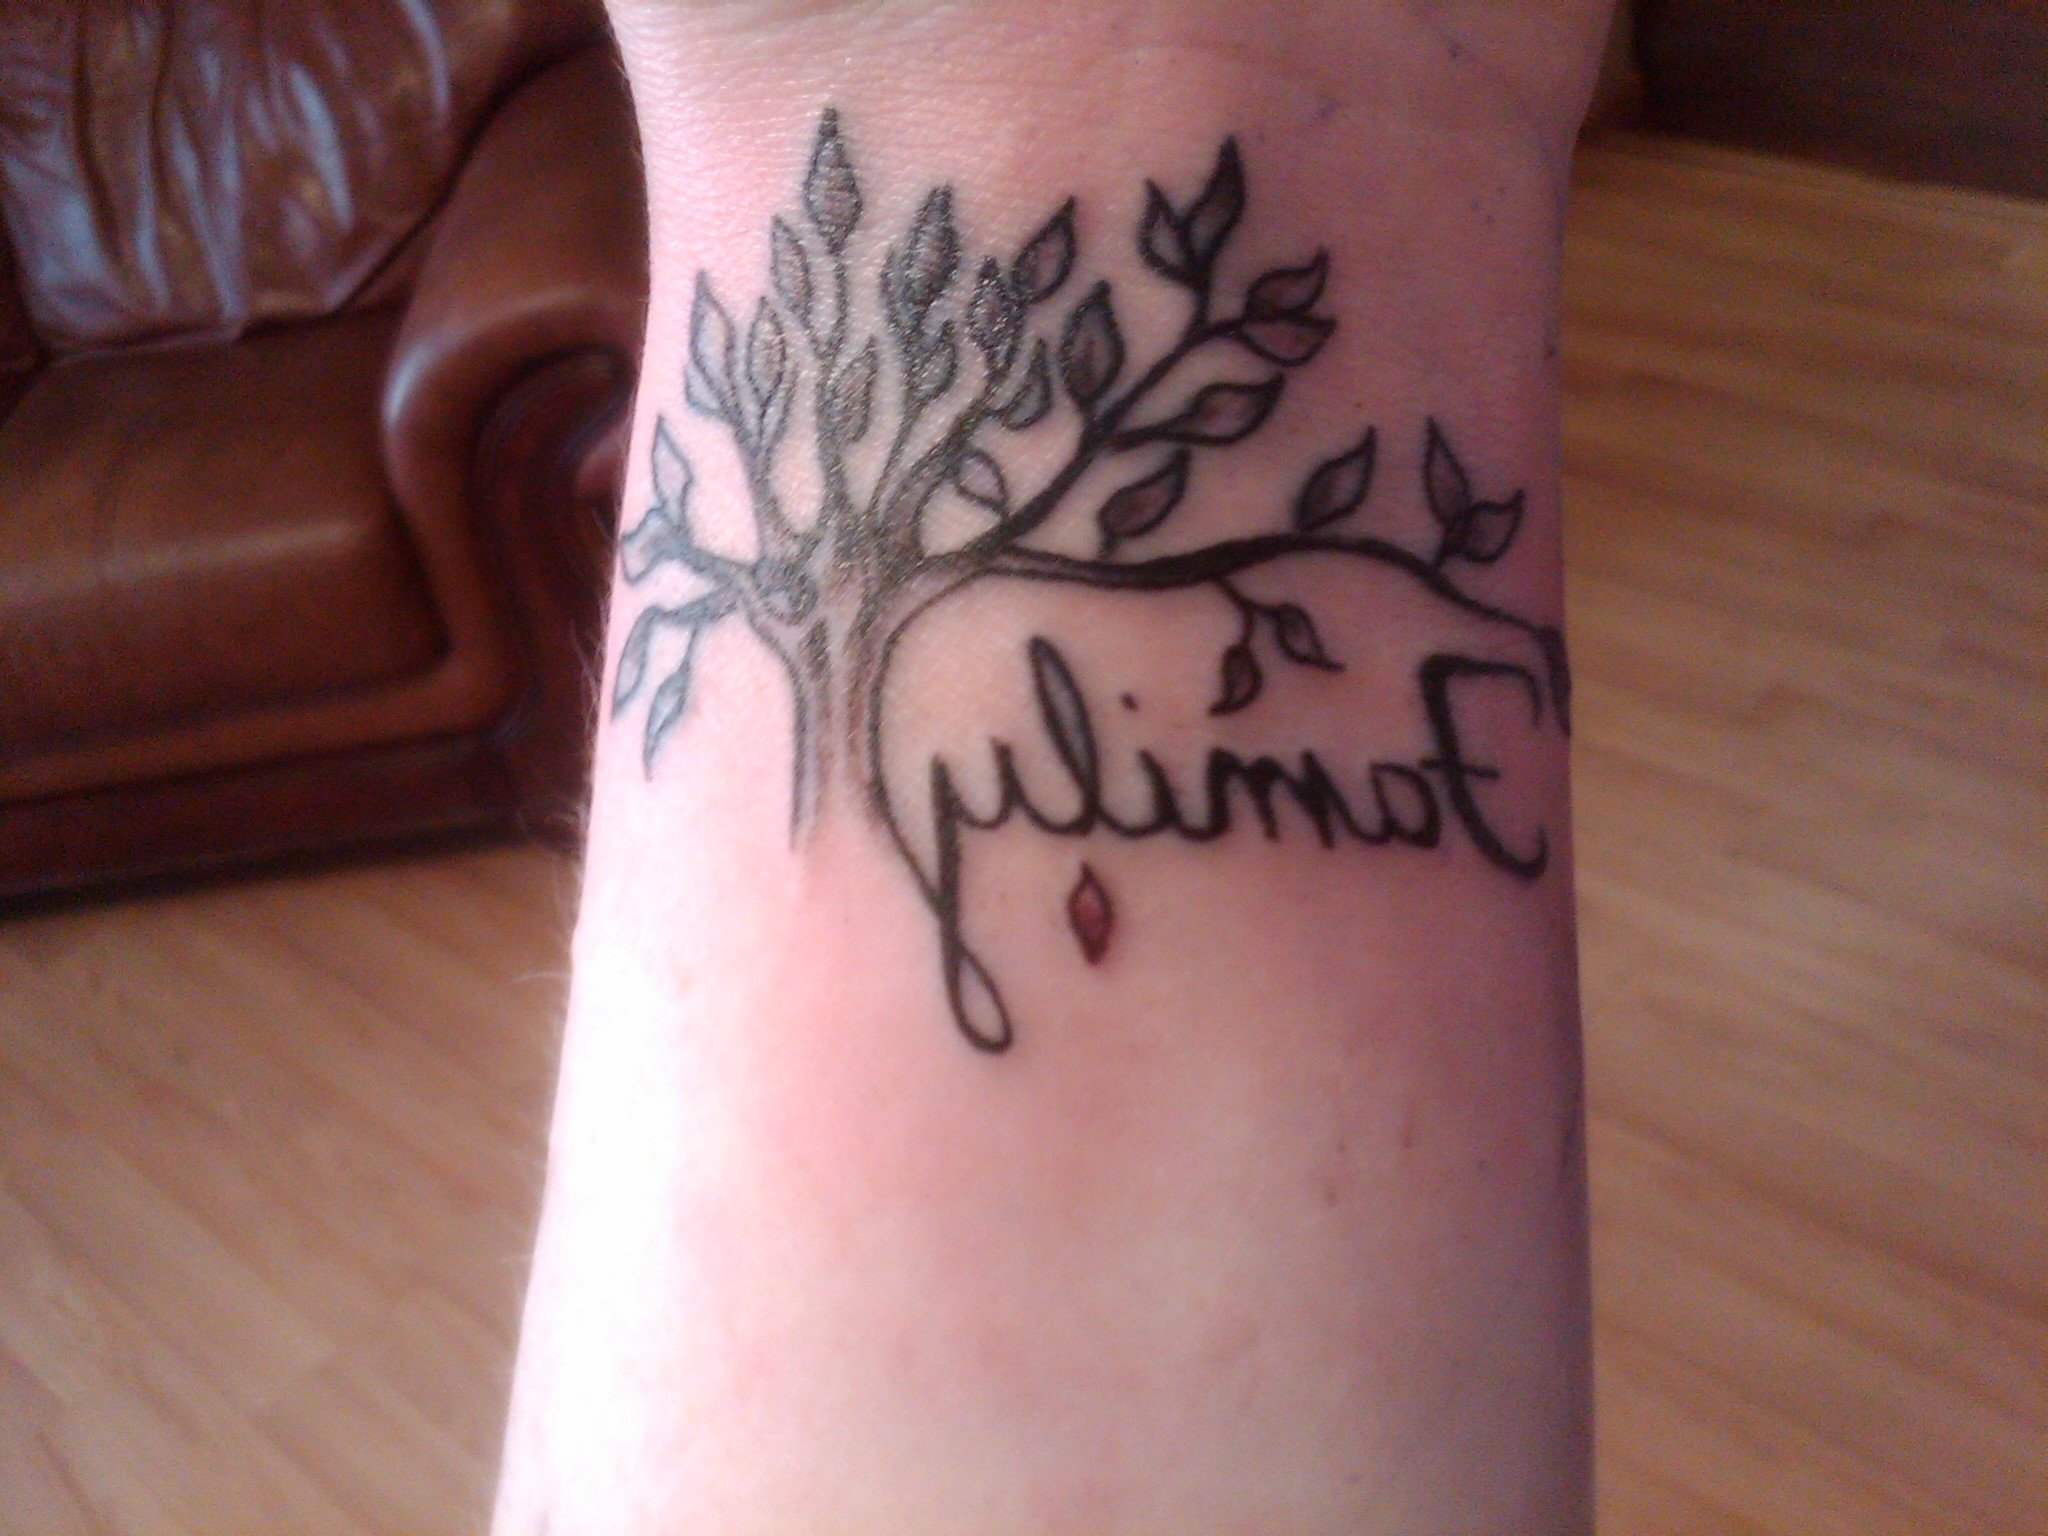 10 Trendy Ideas For A First Tattoo family first arm tattoos 1000 ideas about family first tattoo on 2020